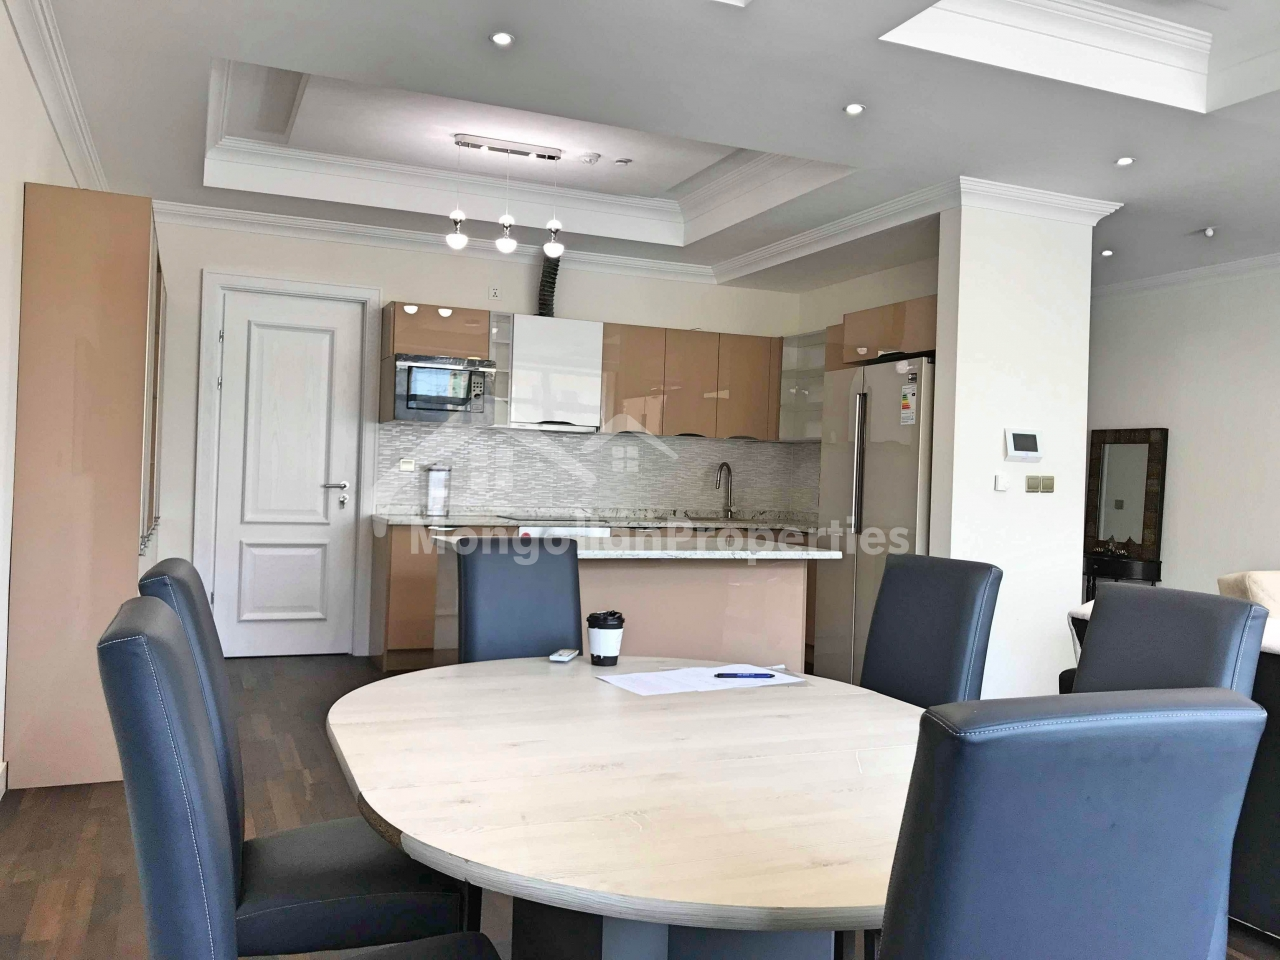 FOR RENT: COZY 4 BEDROOM APARTMENT AT 220K RESIDENCE ...